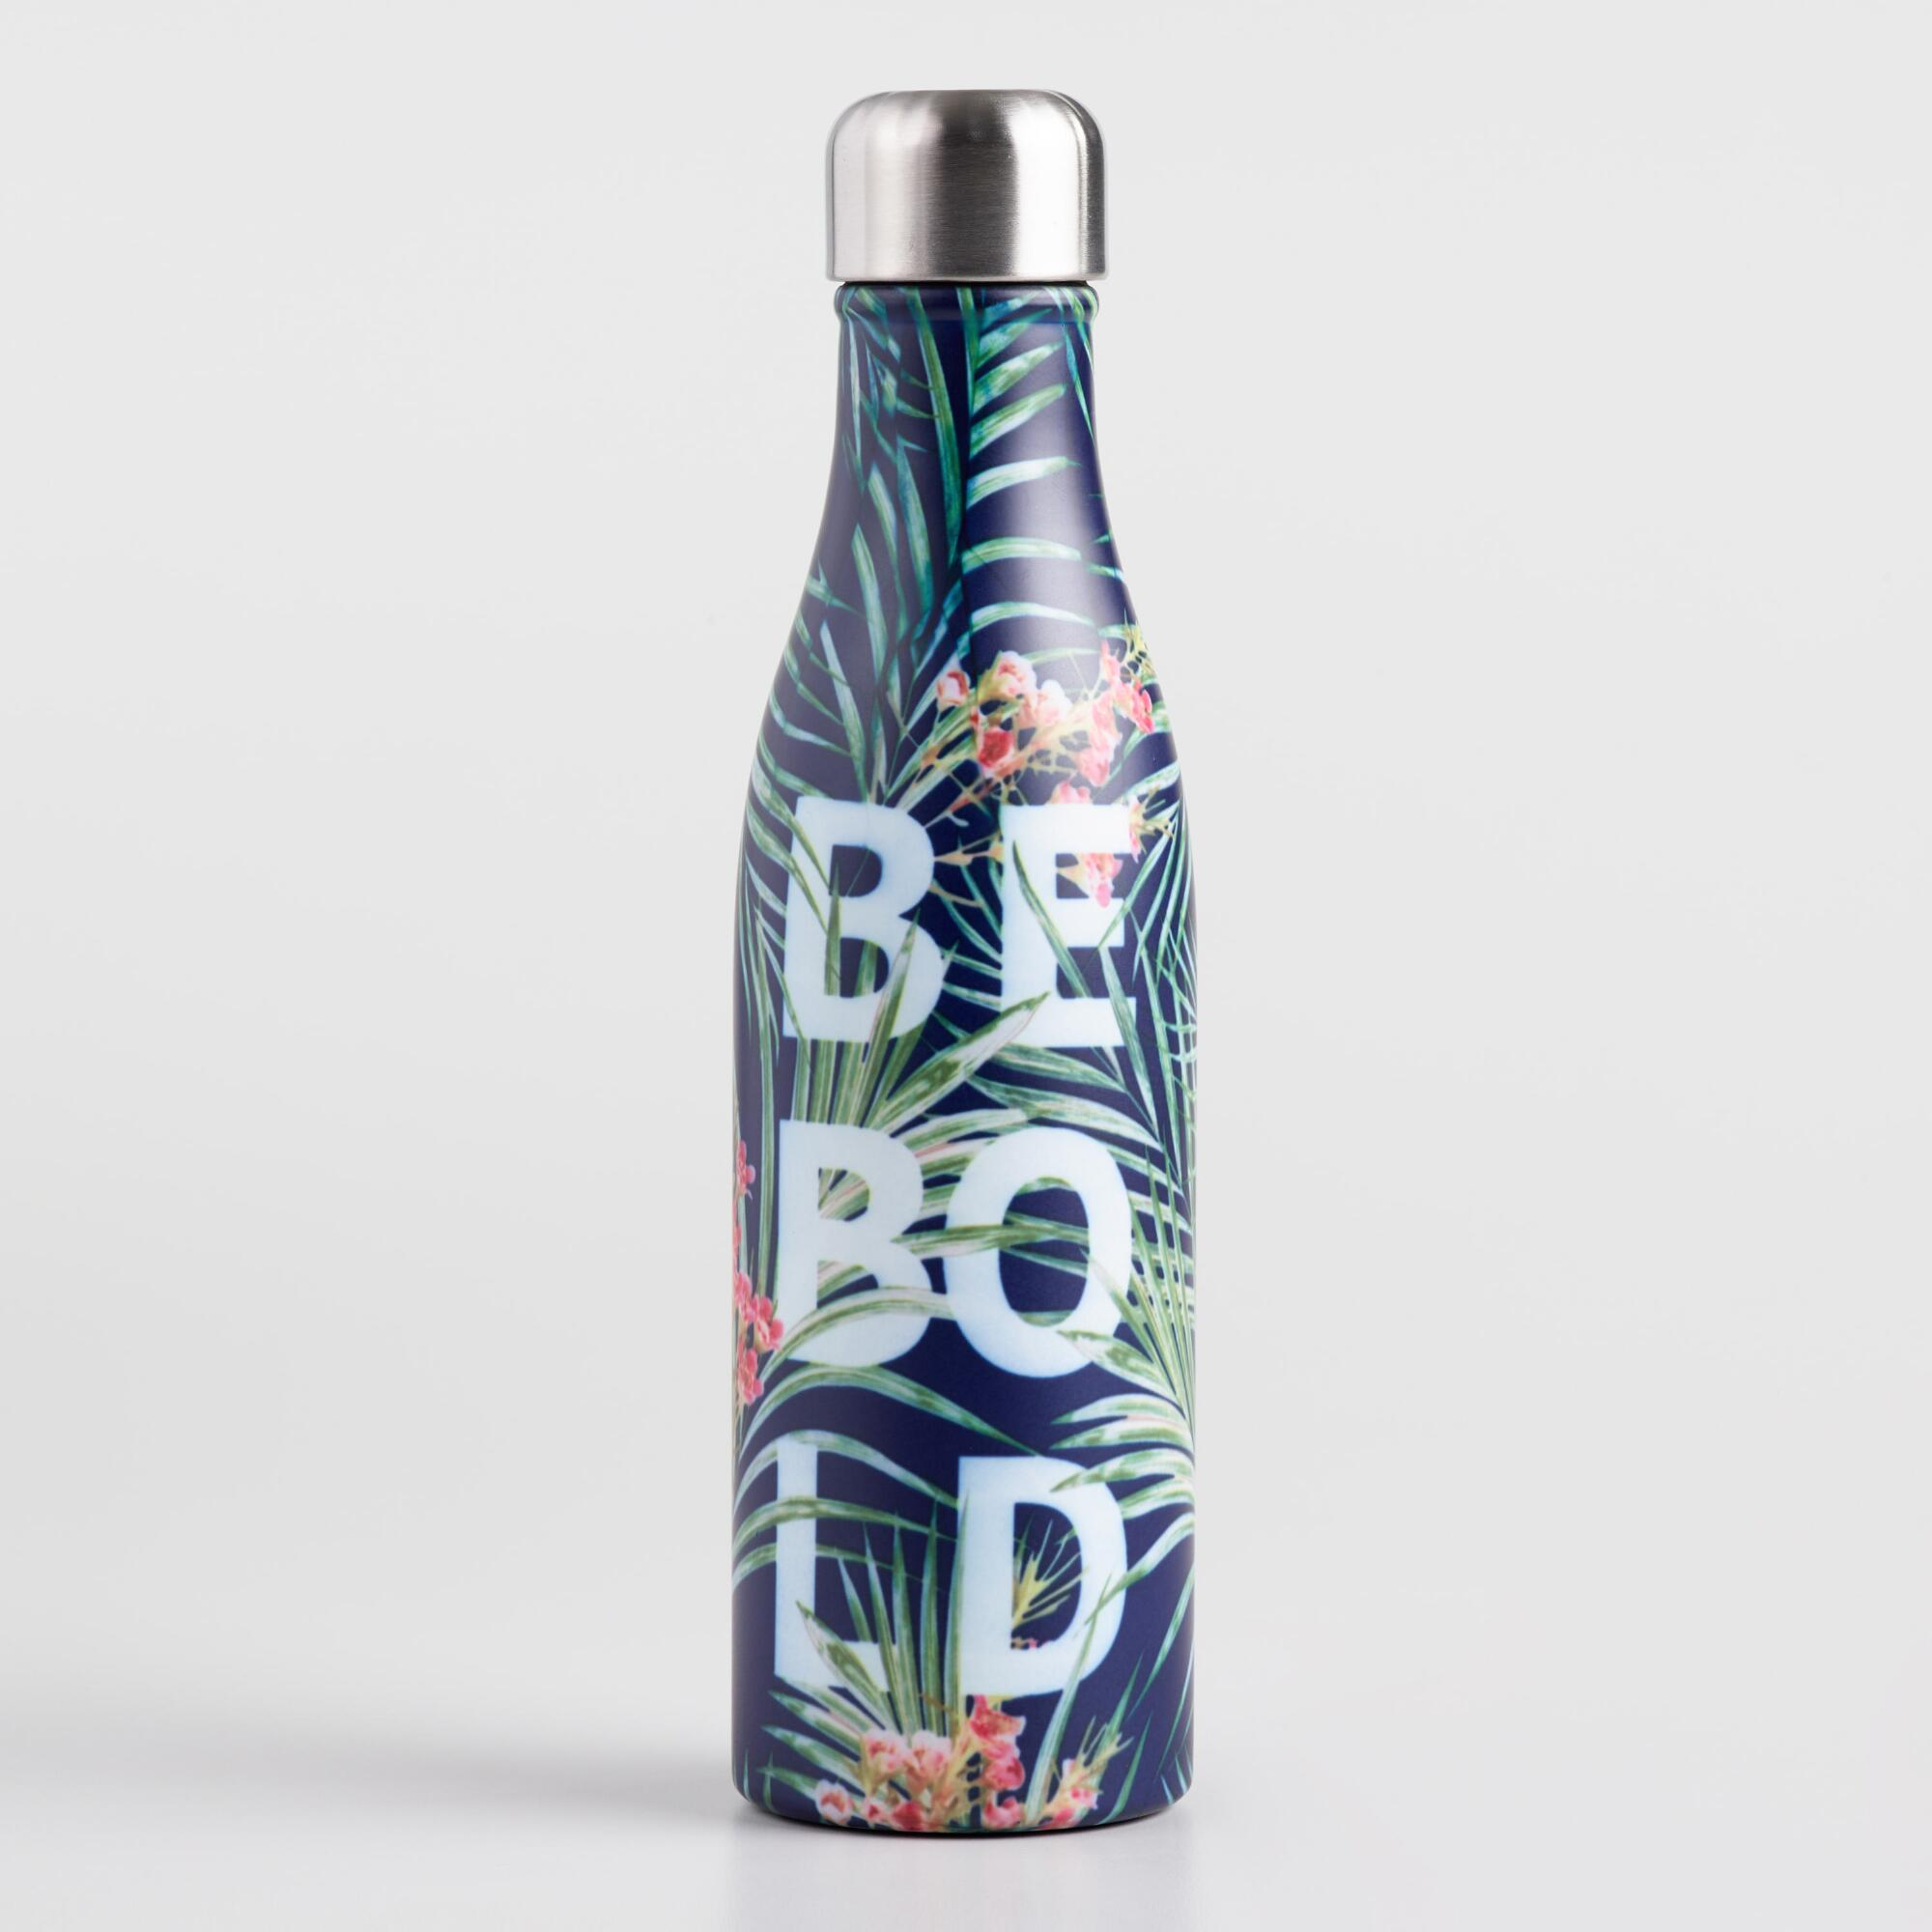 Be Bold Insulated Stainless Steel Water Bottle by World Market